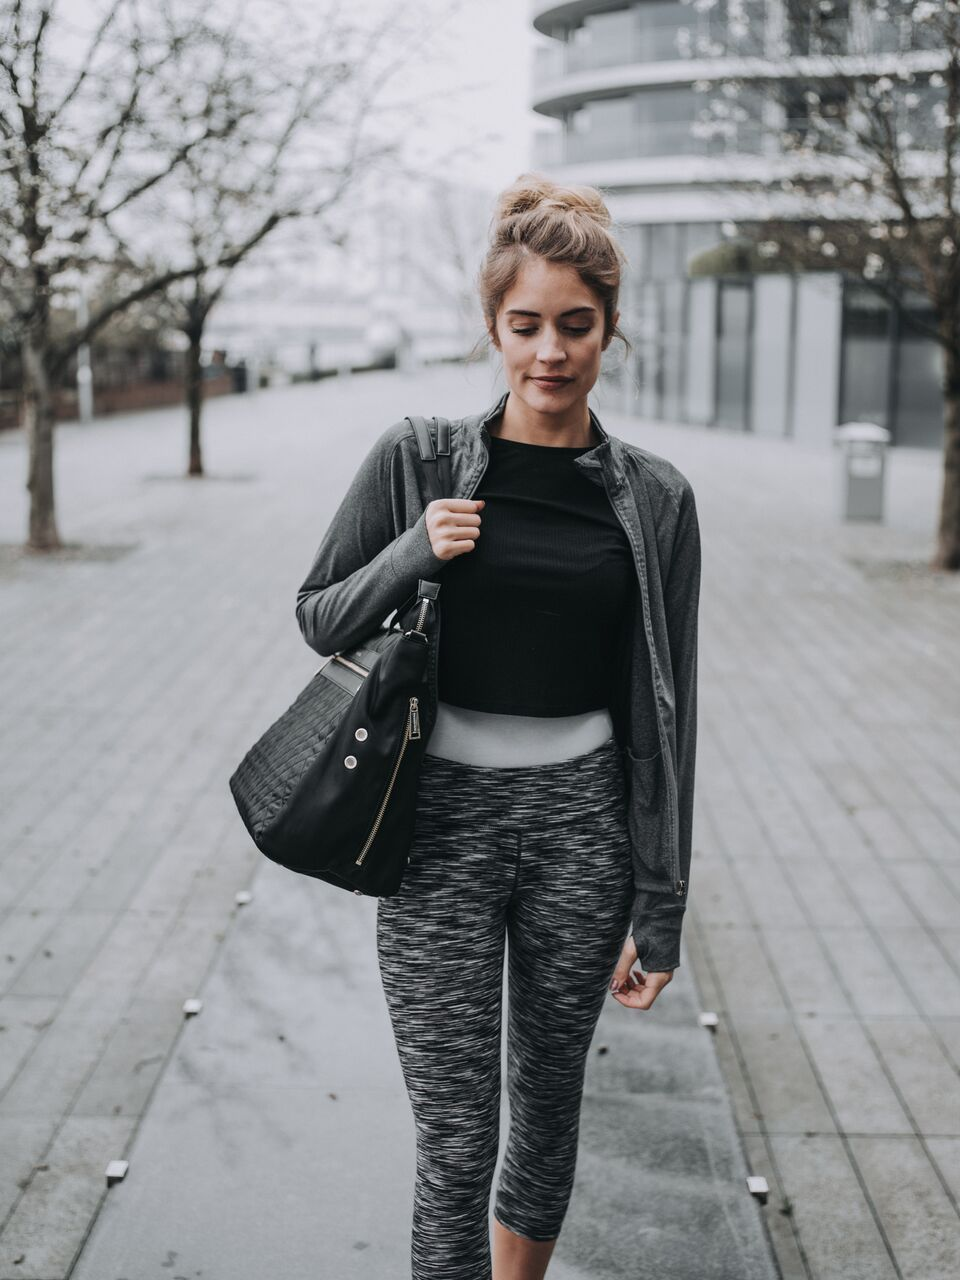 Finish off your outfit with a gym bag that works as hard as you do! Stylish  and practical. 3 separate compartments (inc. one for trainers) to keep work  ... f0448e1dbe603